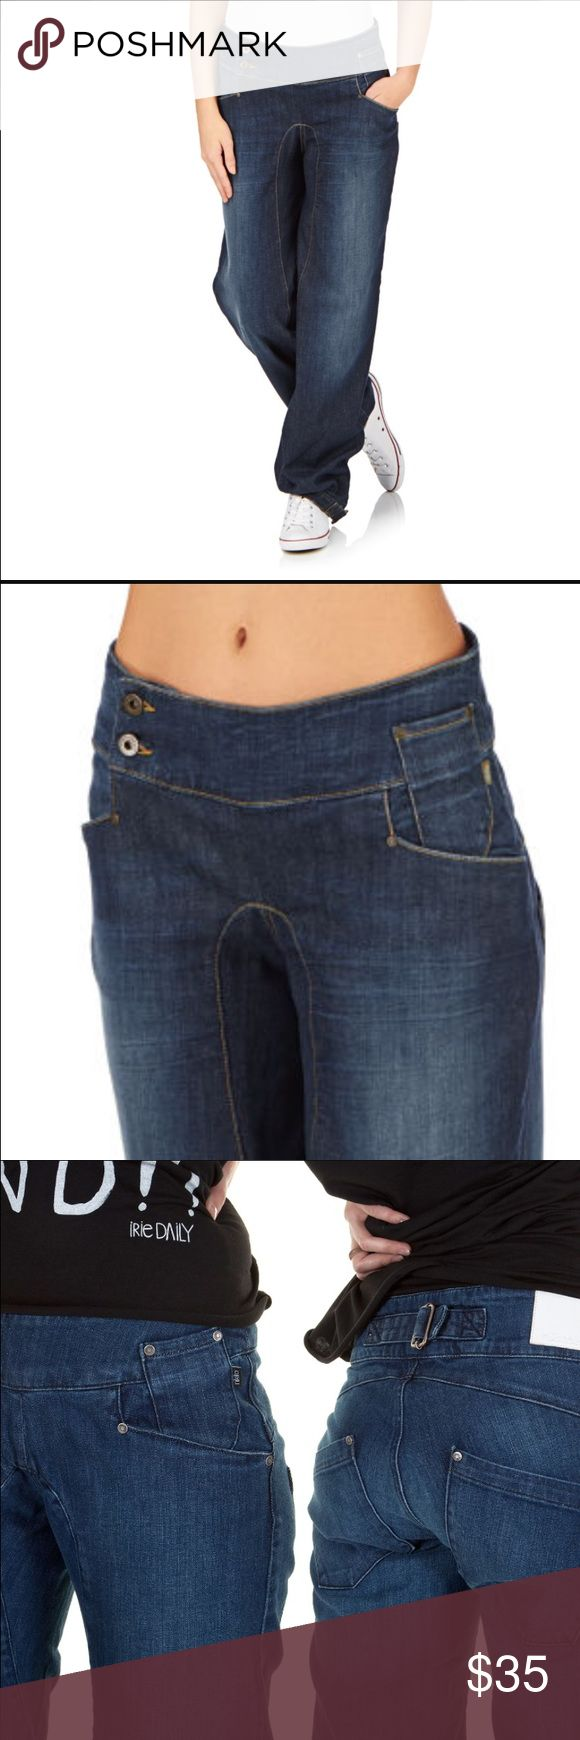 "Nikita Jeans Nikita Jeans come in a dark wash 3 front pockets, back cinching buckle, with a harem style fit and ankle adjustable buckles. 100% Cotton. Size: 27 Inseam: 32"". In like new condition. Nikita  Jeans"